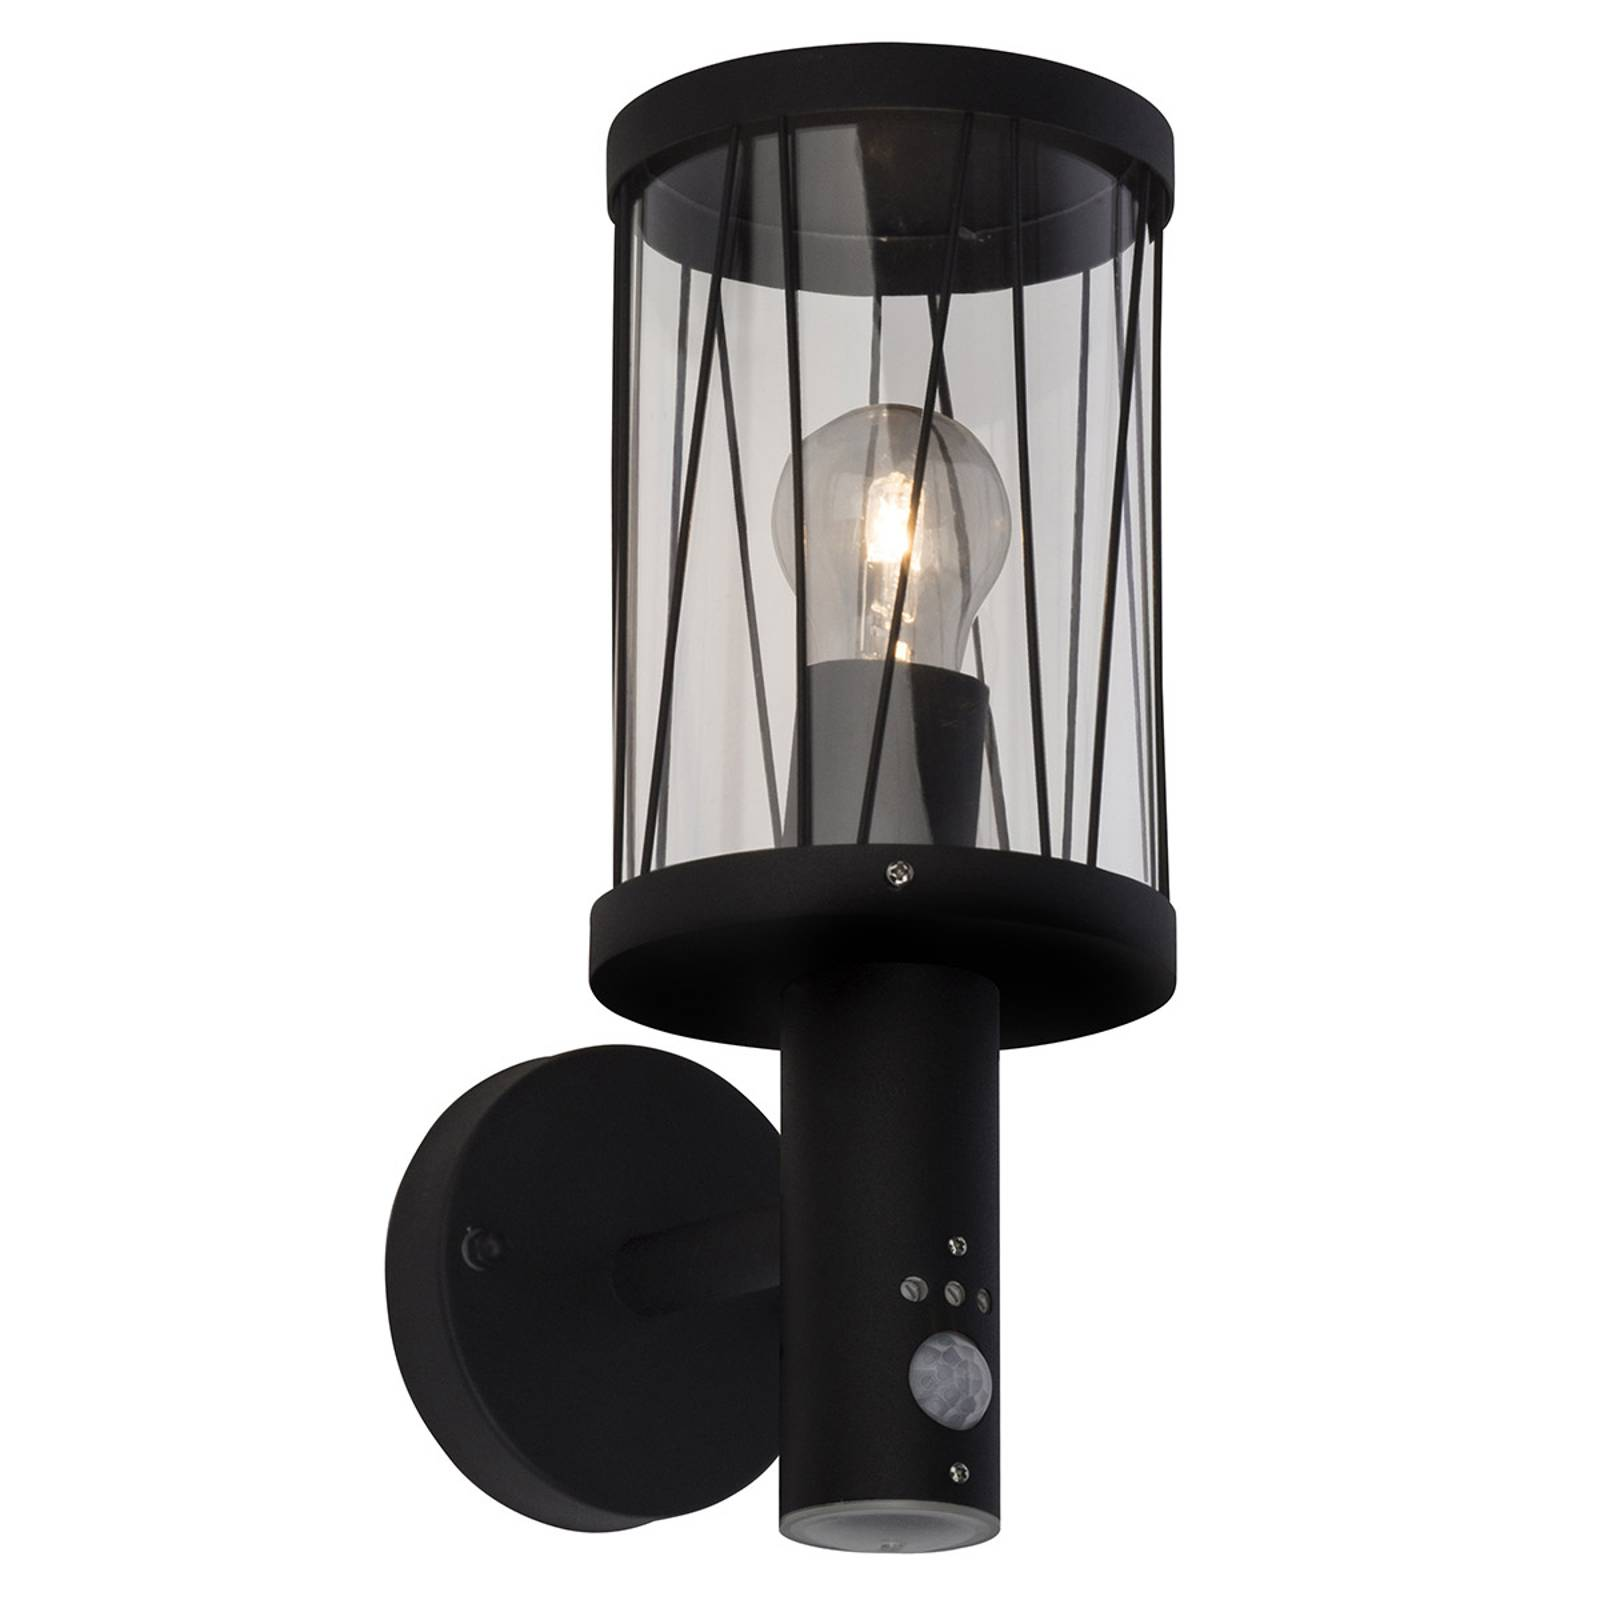 Outdoor wall lamp Reed with motion detector from Brilliant